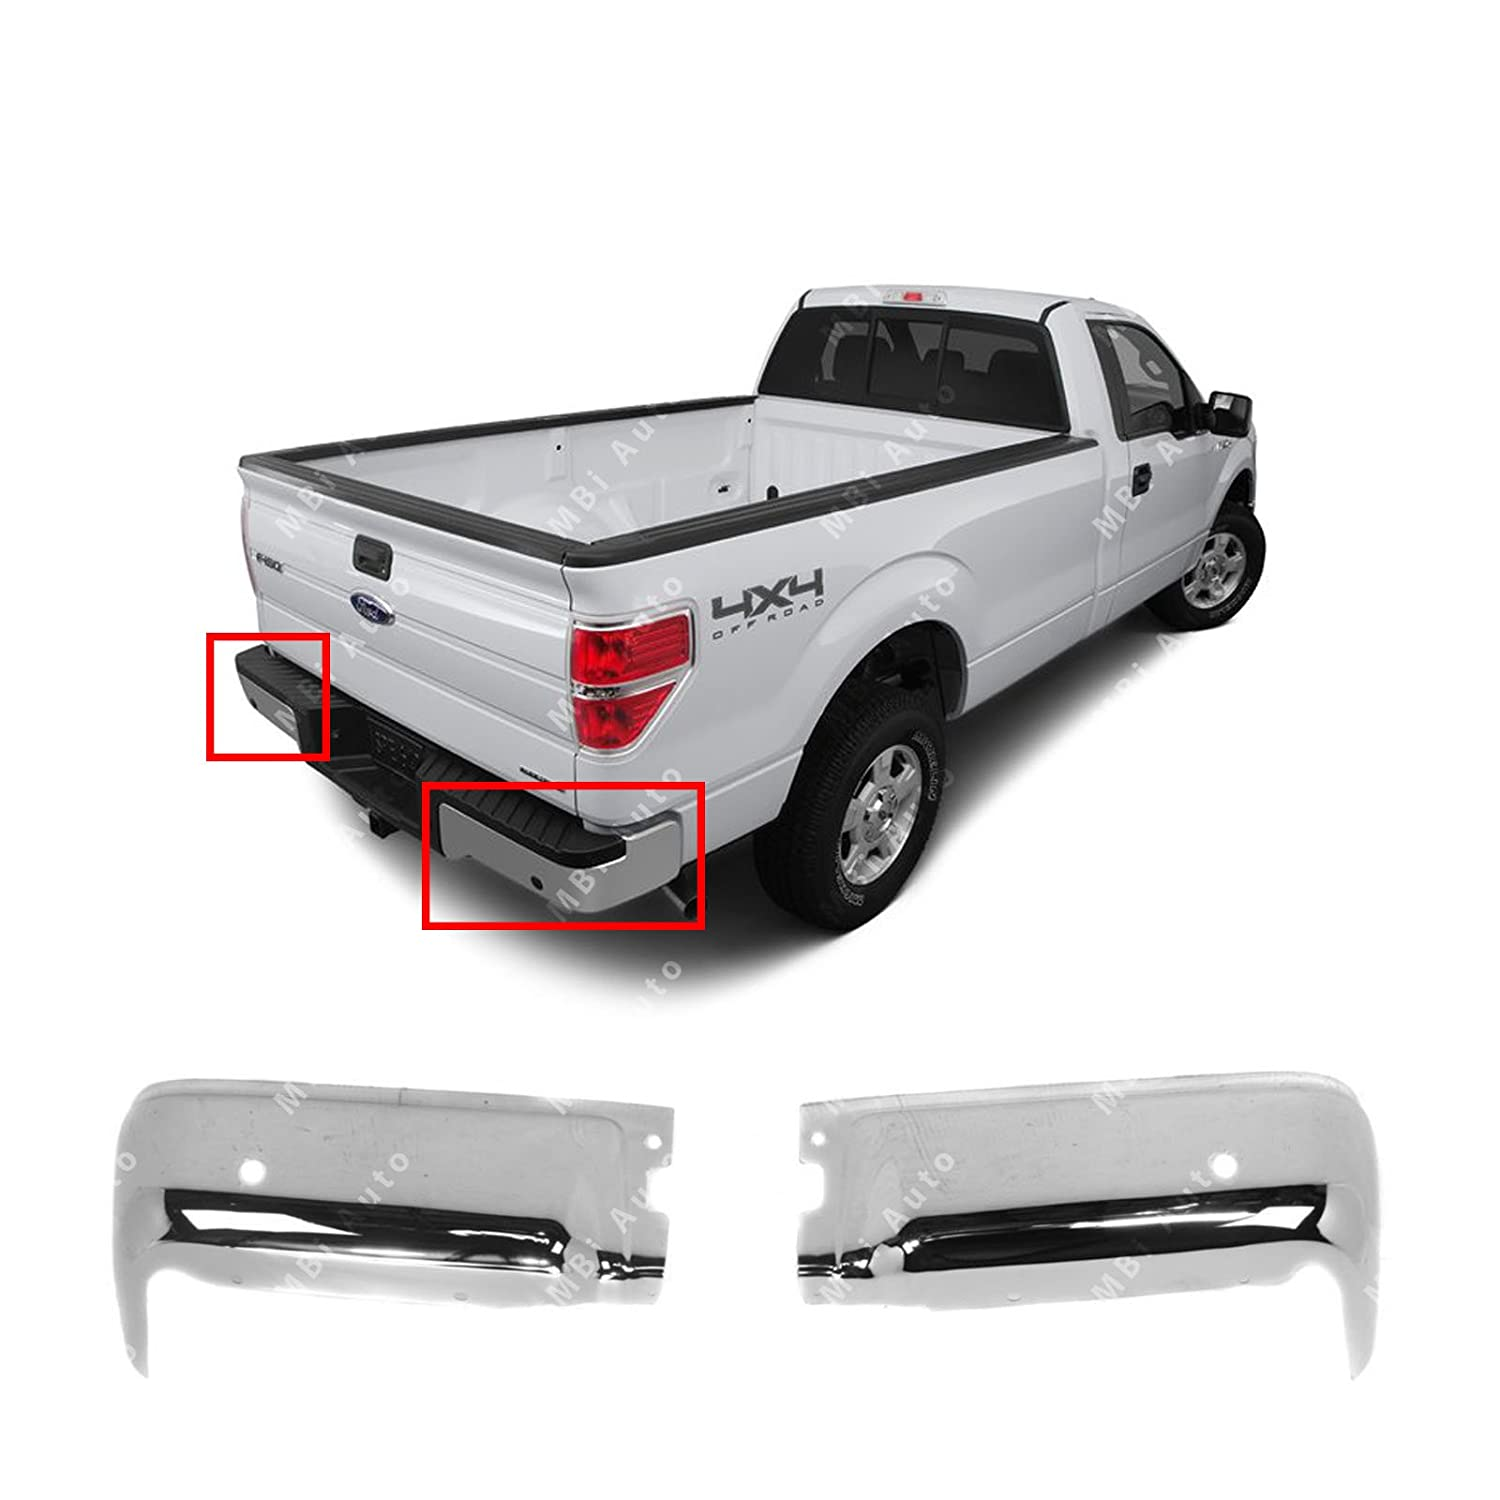 MBI AUTO - Chrome, Steel Pair of Left & Right Rear Bumper End Caps for 2009-2014 Ford F150 Pickup w/Park Assist 09-14, FO1102372